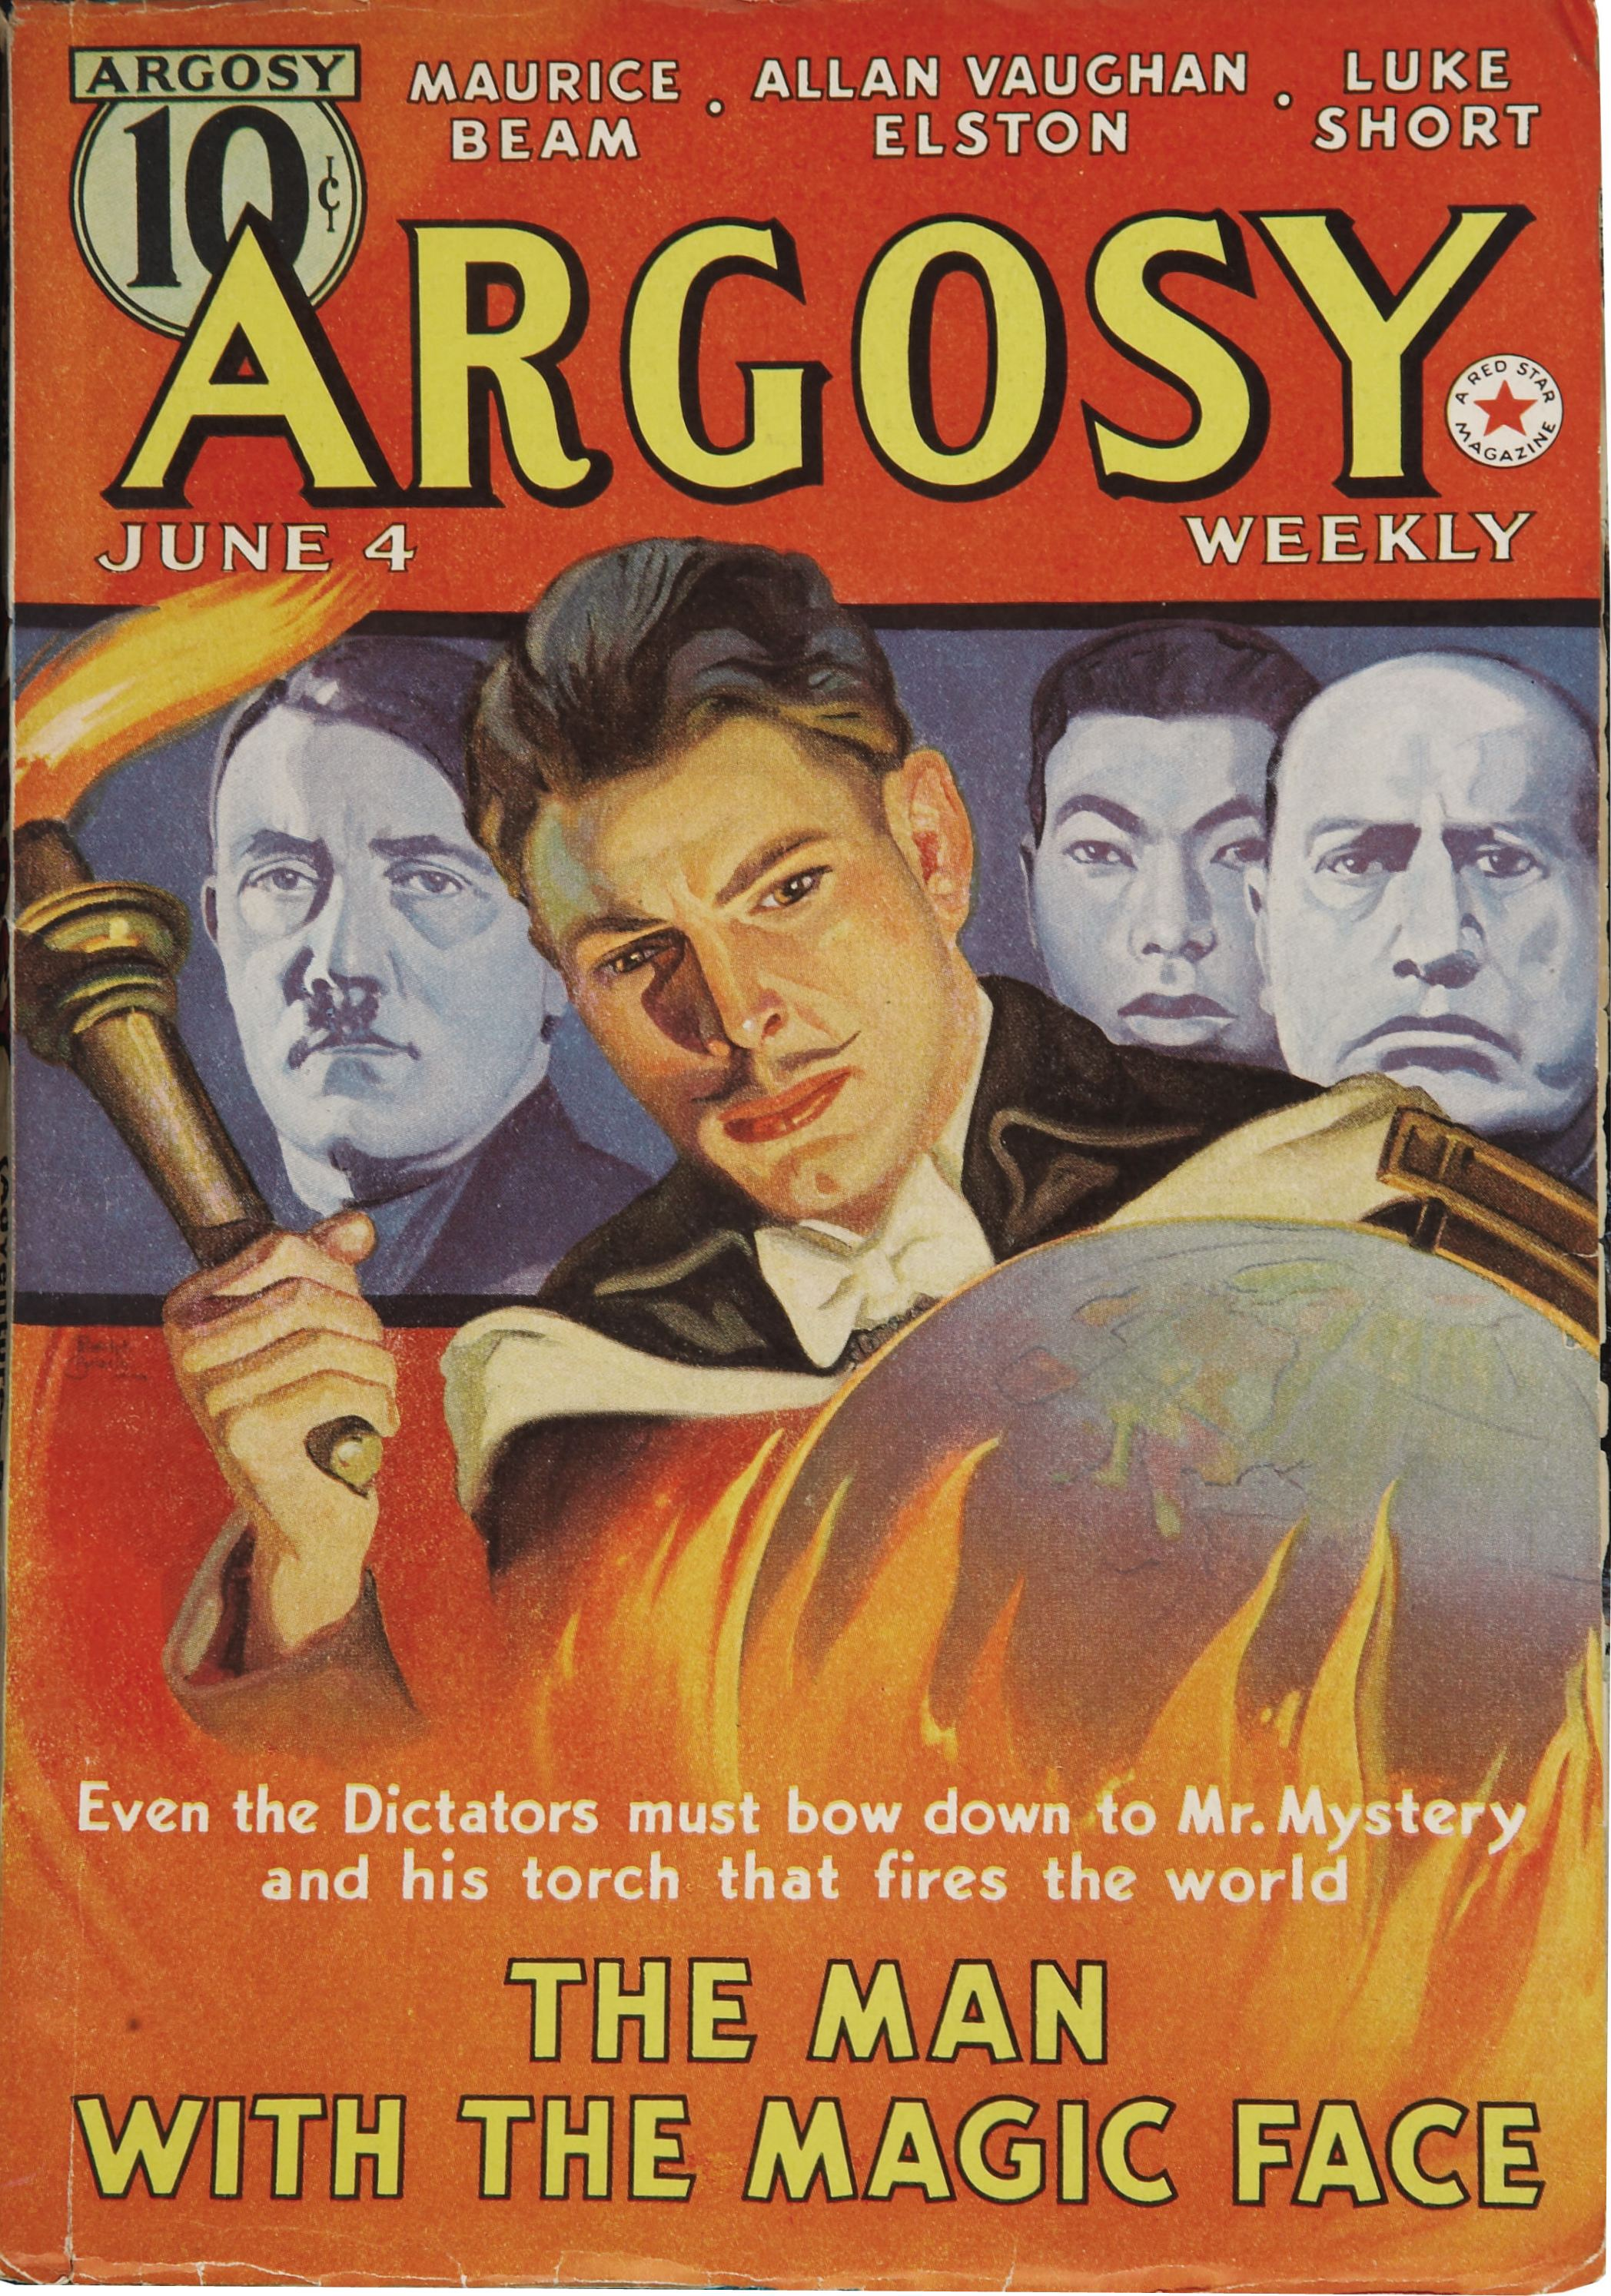 25722875-The_Man_With_the_Magic_Face_Argosy_Weekly,_June_4,_1938